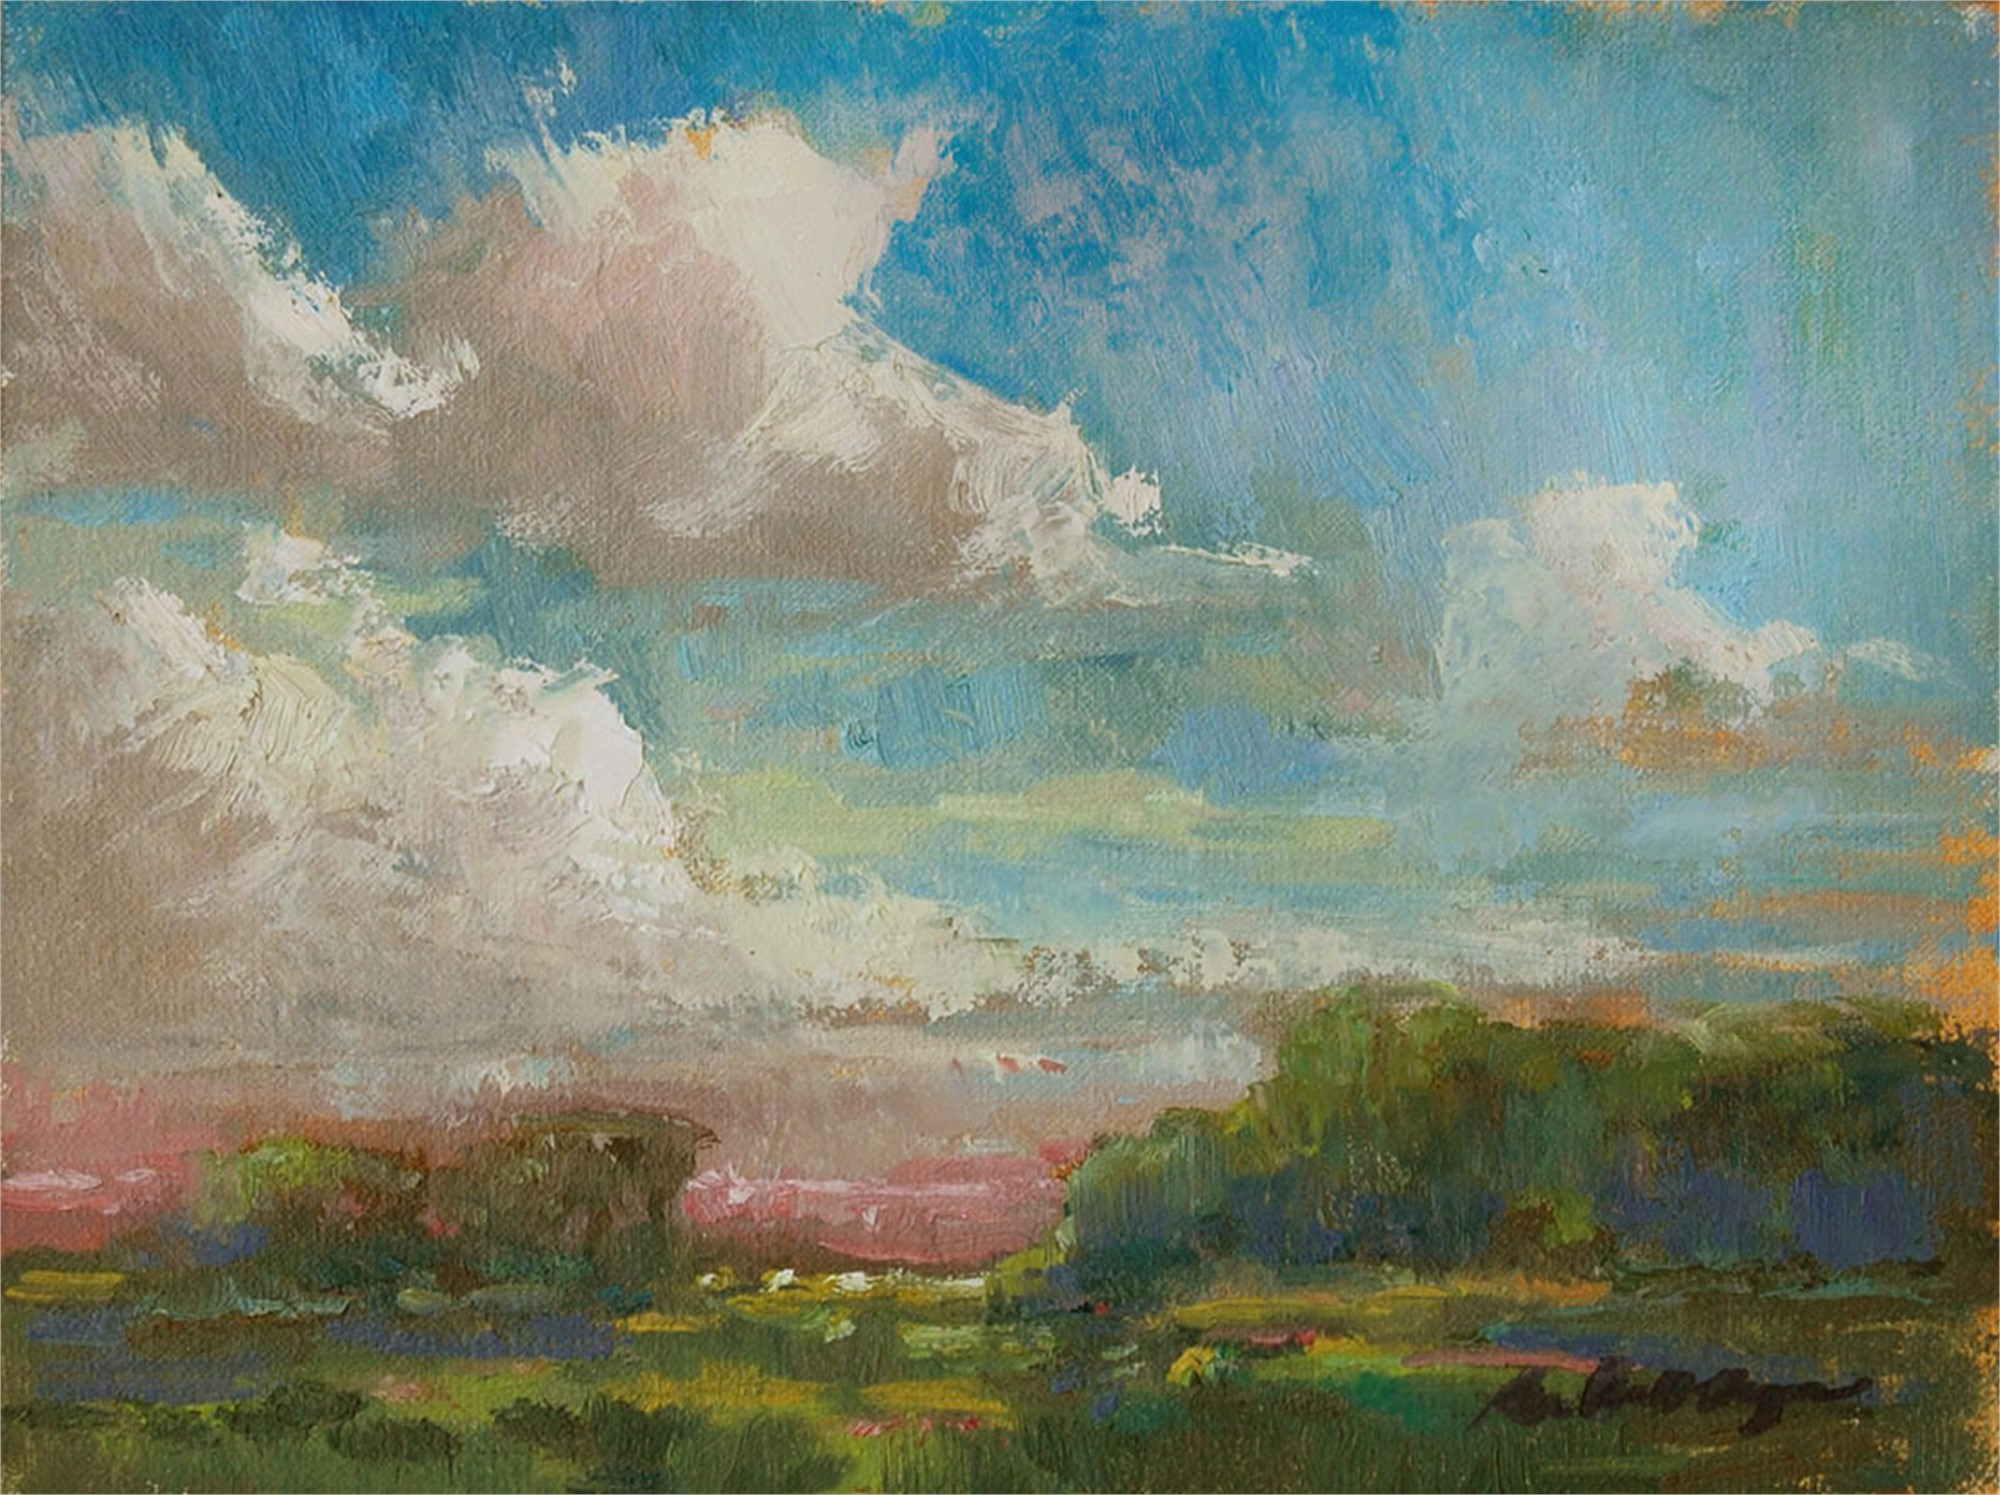 A Break In the Clouds by Karen Hewitt Hagan